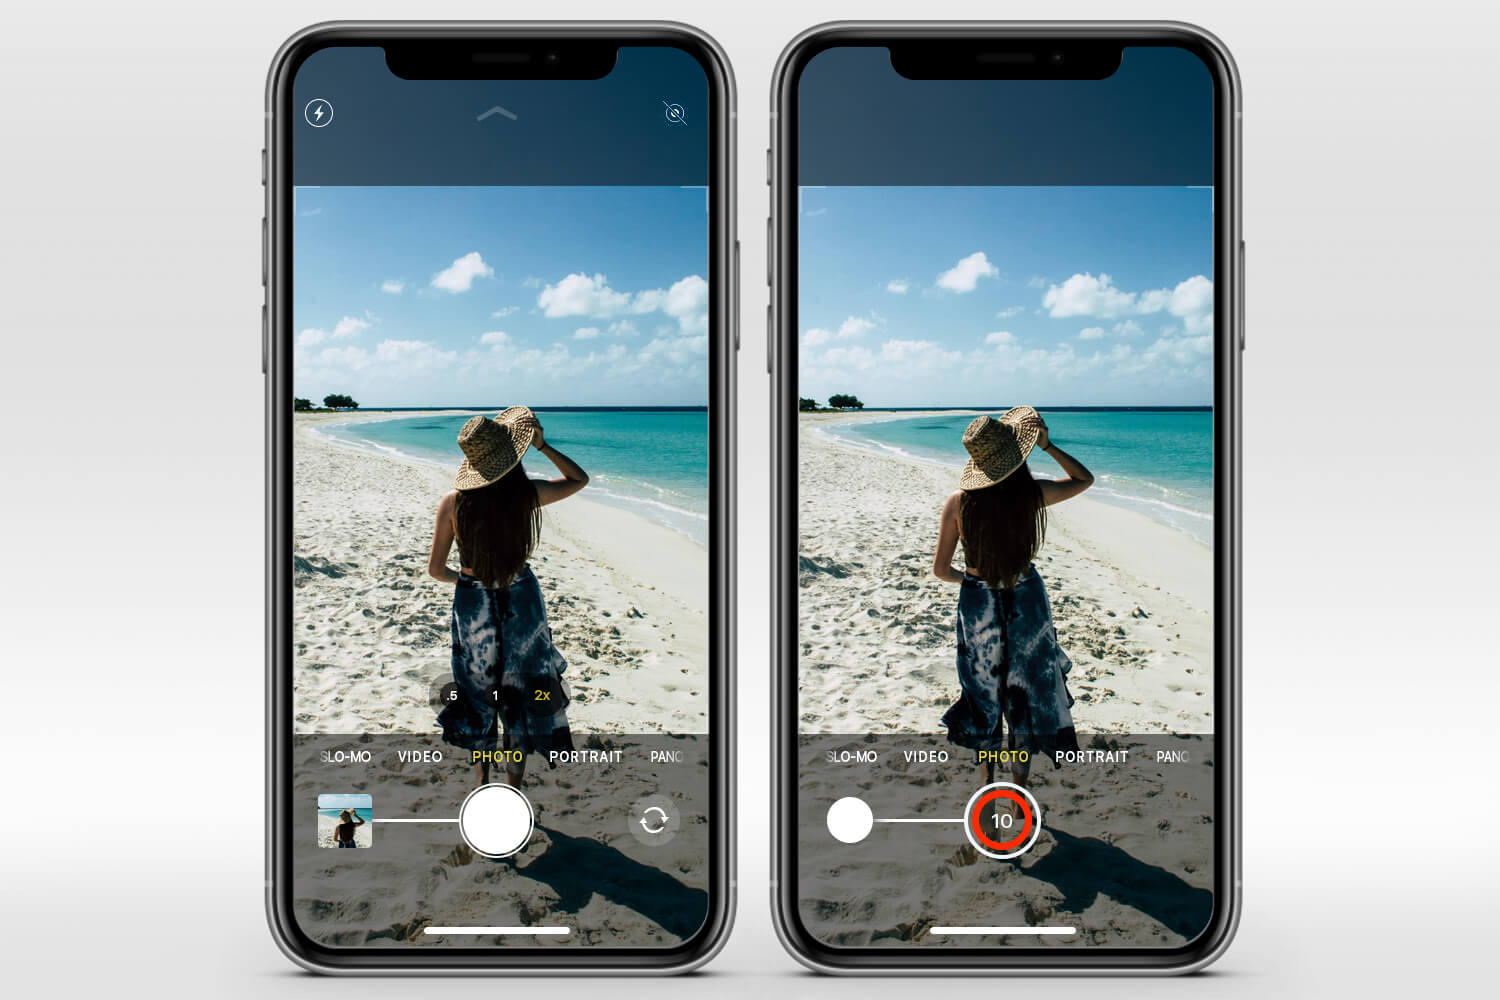 Capture Burst Photos on iPhone 11 Pro Max, 11 Pro, and iPhone 11